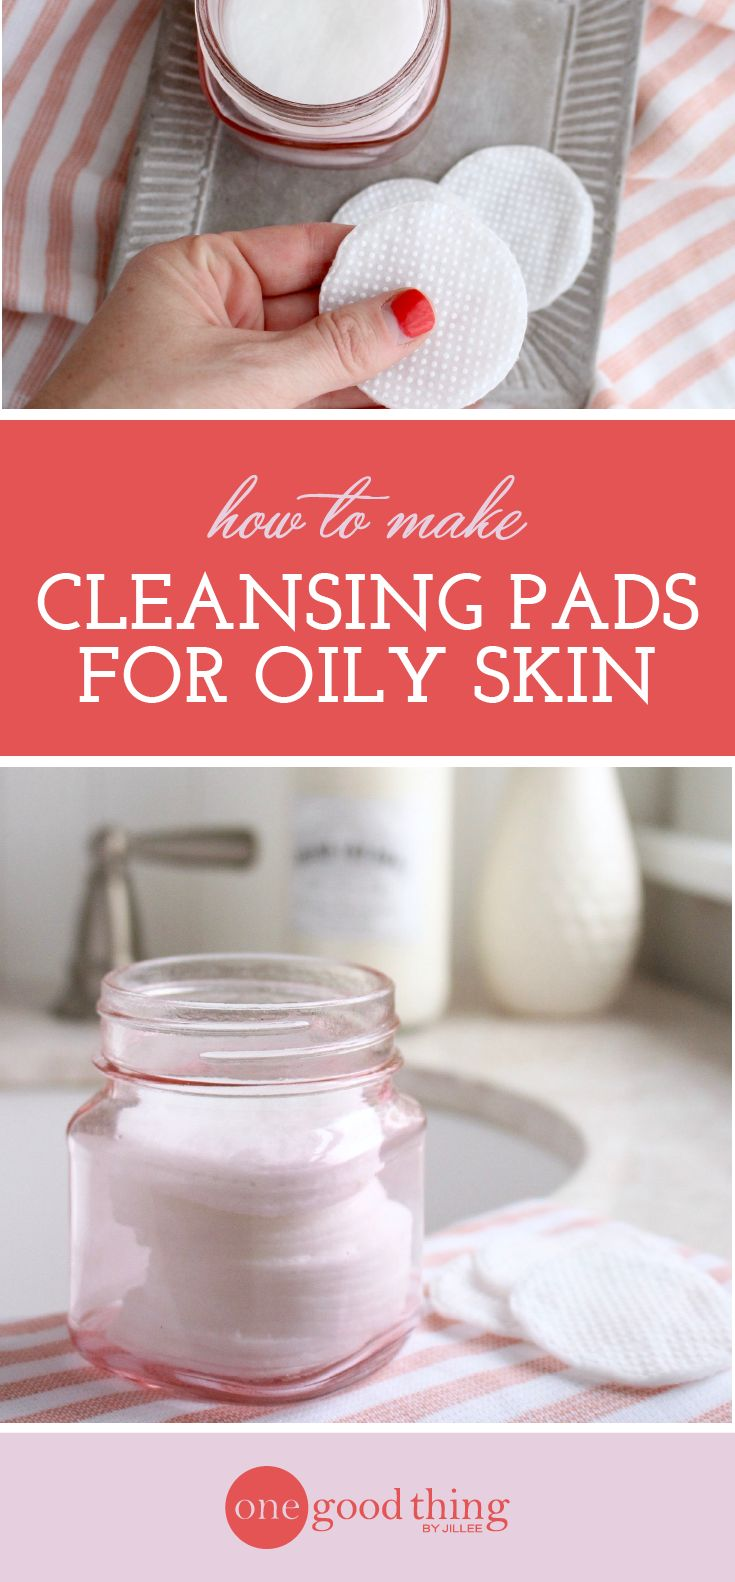 Learn how to make your own homemade cleansing pads that are perfect for oily skin. These leave your skin nice and clean, without feeling overly tight.